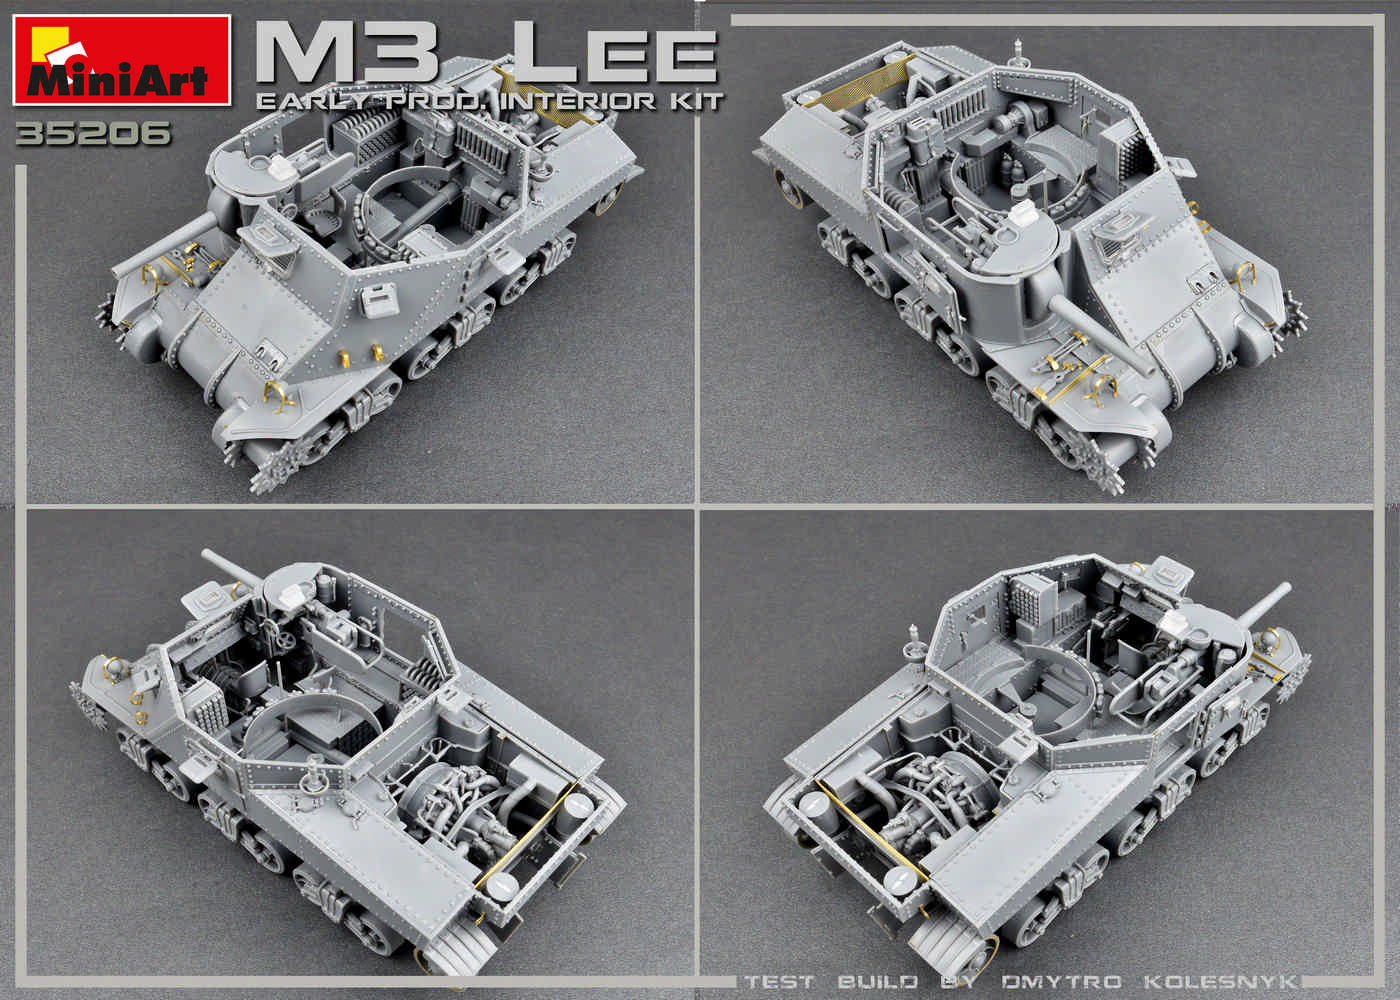 New Build Up and Side Views of 35206 M3 LEE EARLY PRODUCTION. INTERIOR KIT